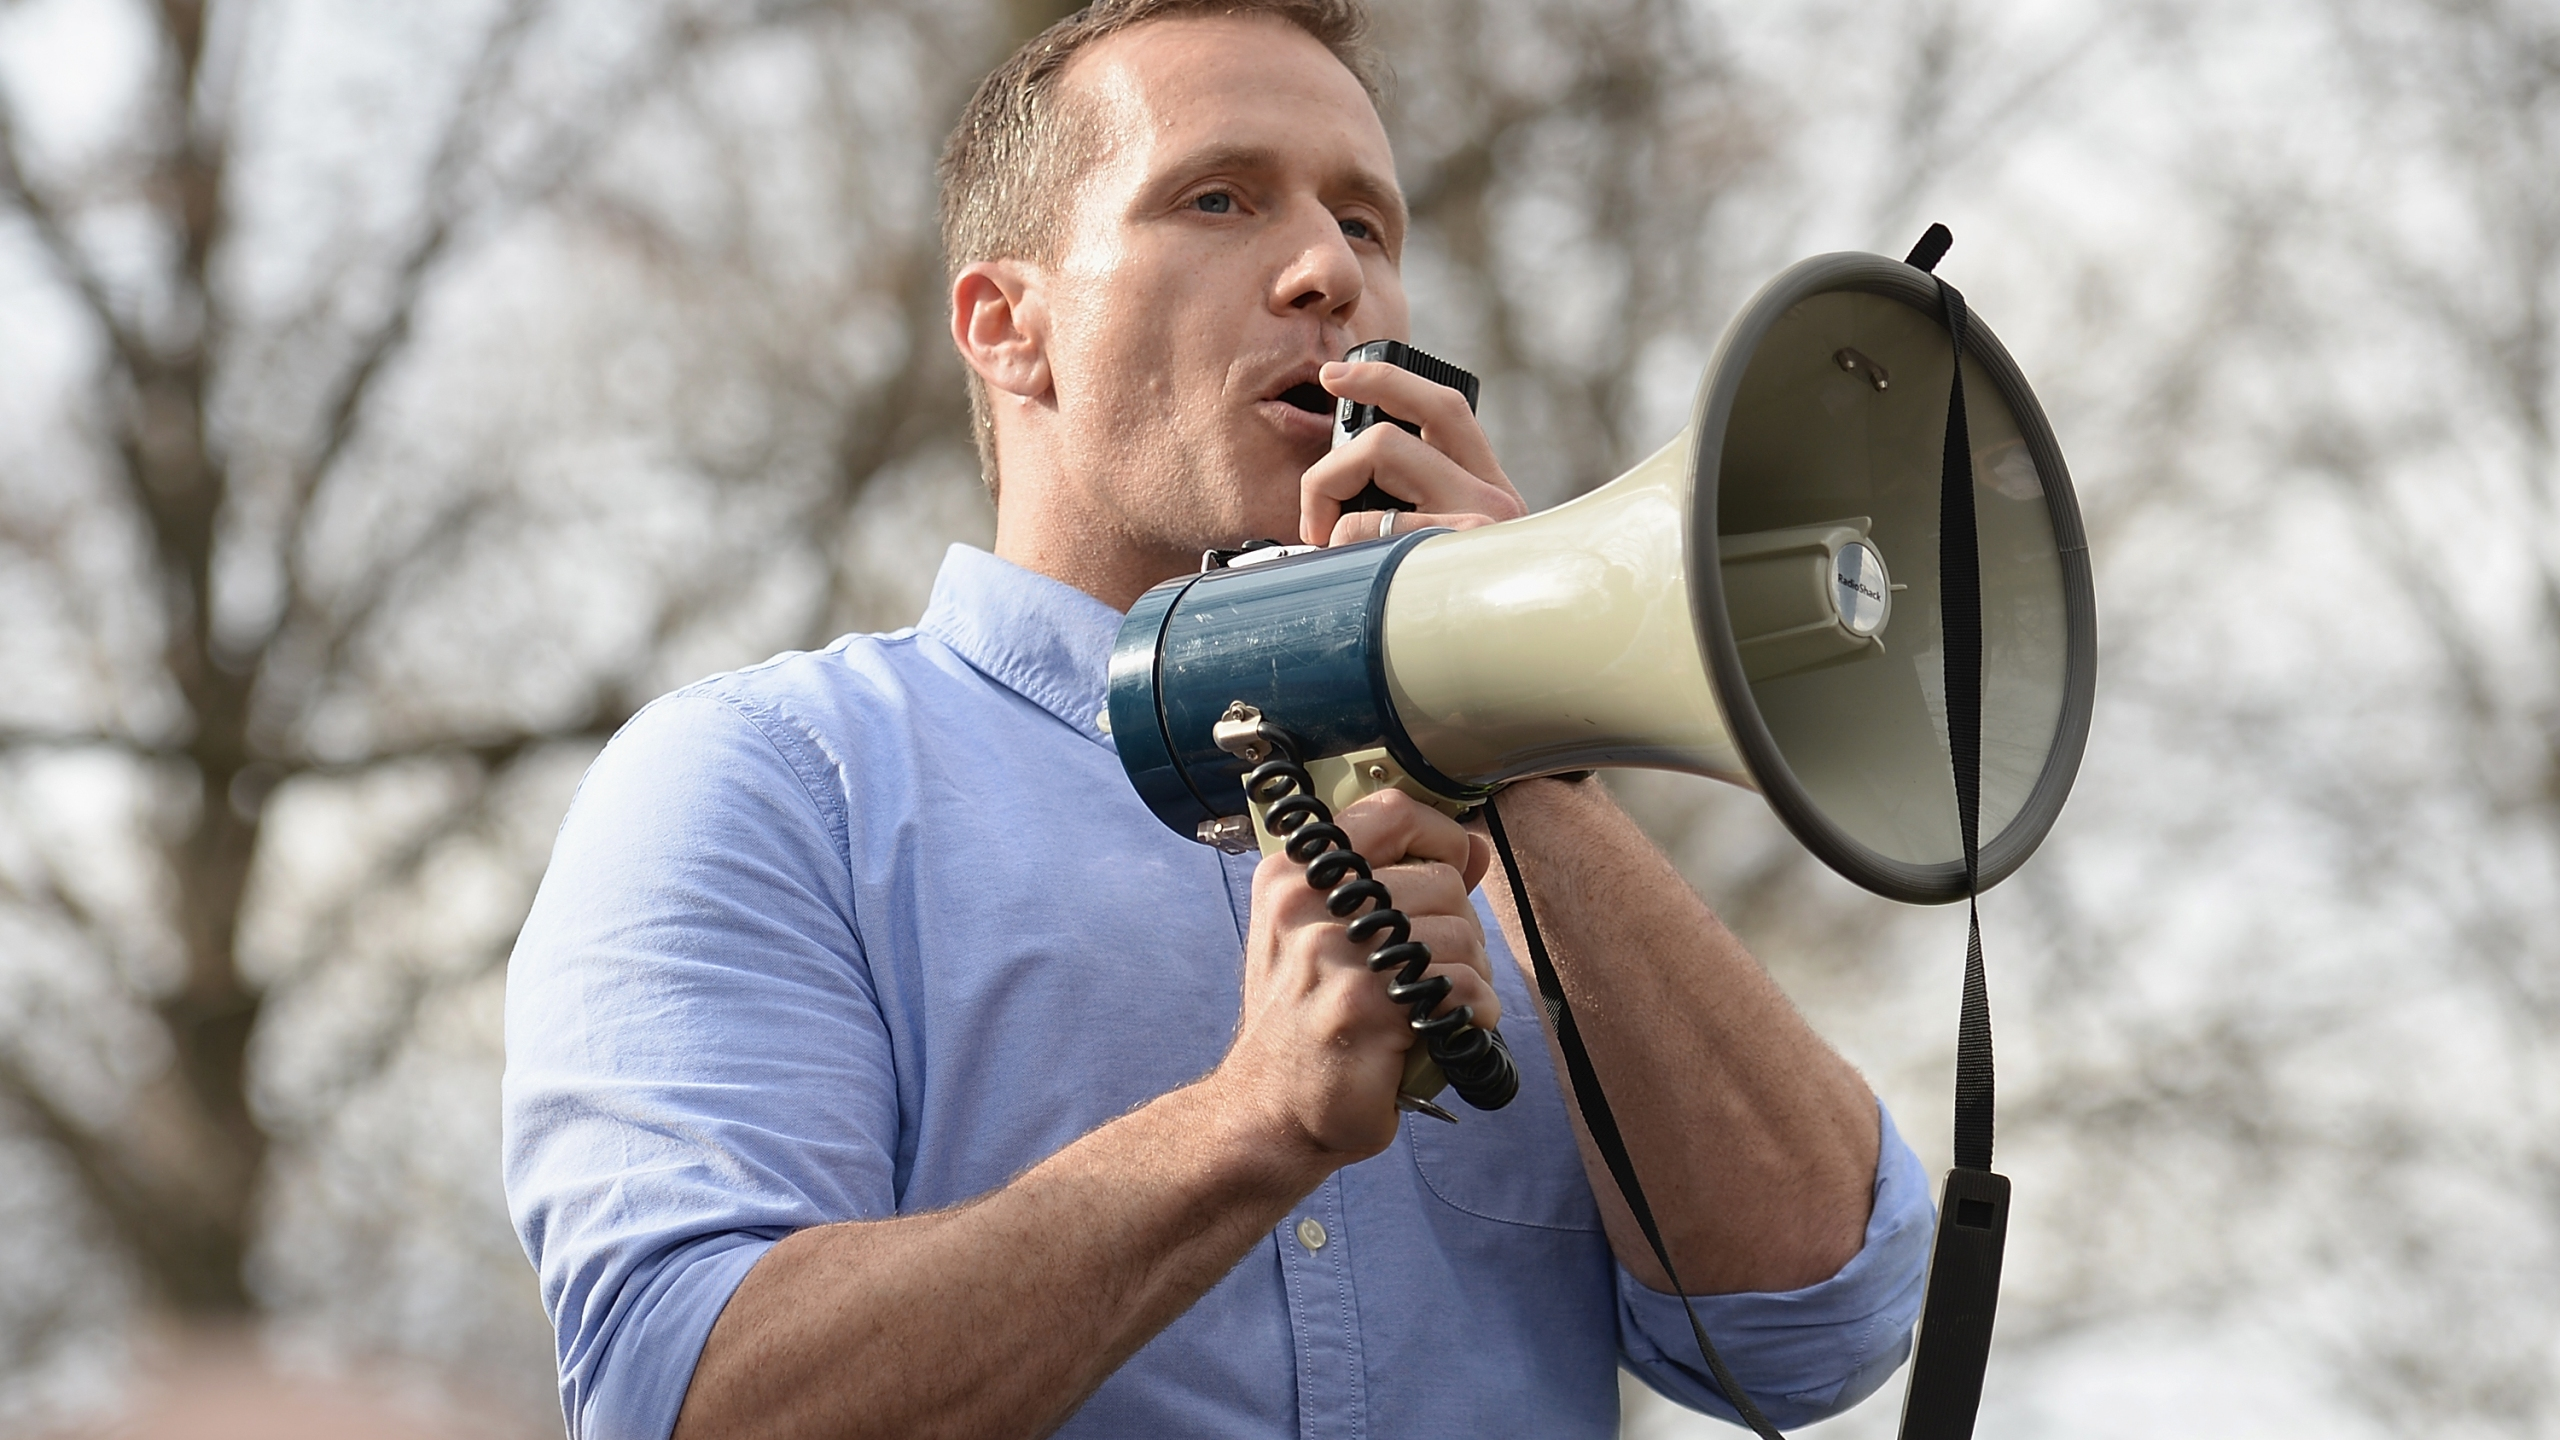 Missouri Governor Eric Greitens addresses the crowd at Chesed Shel Emeth Cemetery on February 22, 2017 in University City, Missouri. (Credit: Michael Thomas/ Getty Images)